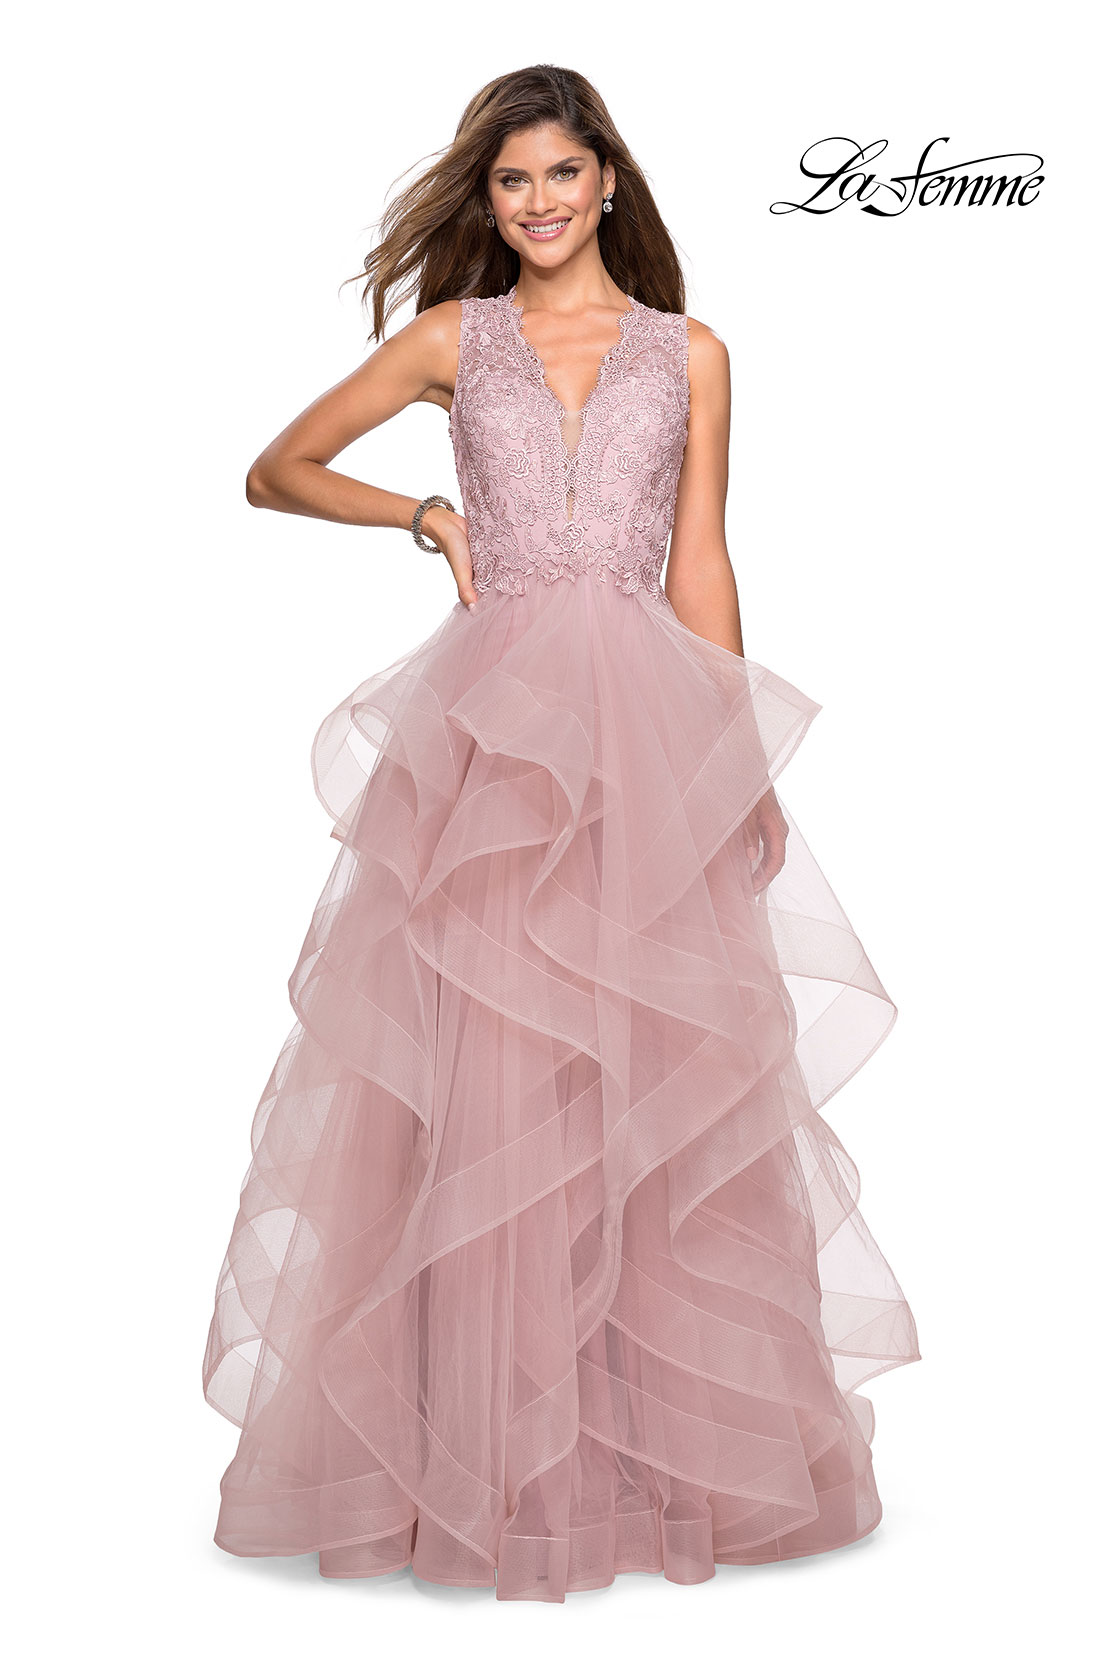 Mauve ball gown with tulle skirt and lace